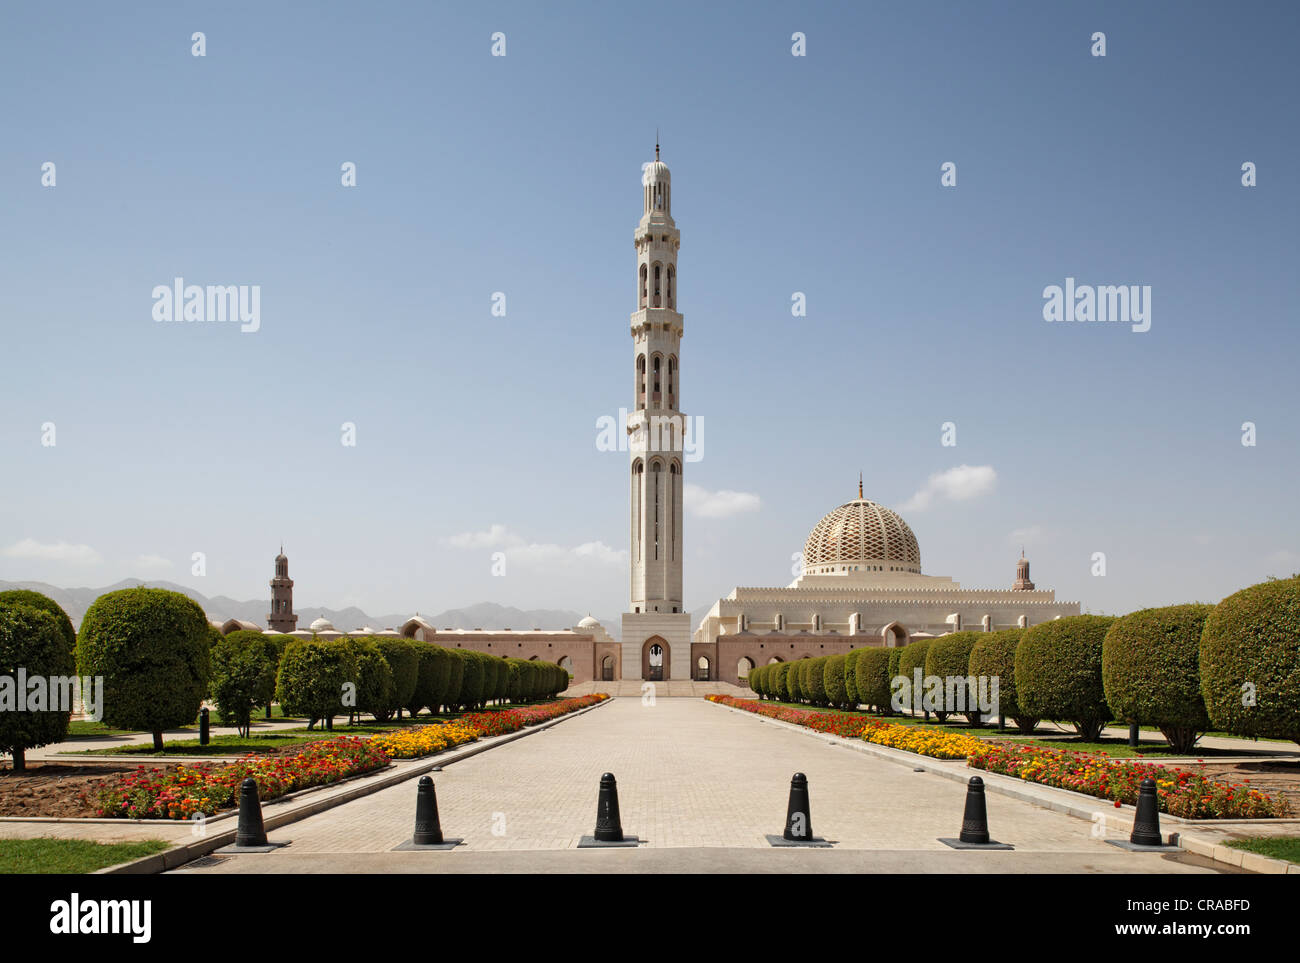 Overview, minaret, flower bed and trees, Sultan Qaboos Grand Mosque, Muscat capital, Sultanate of Oman, gulf states - Stock Image